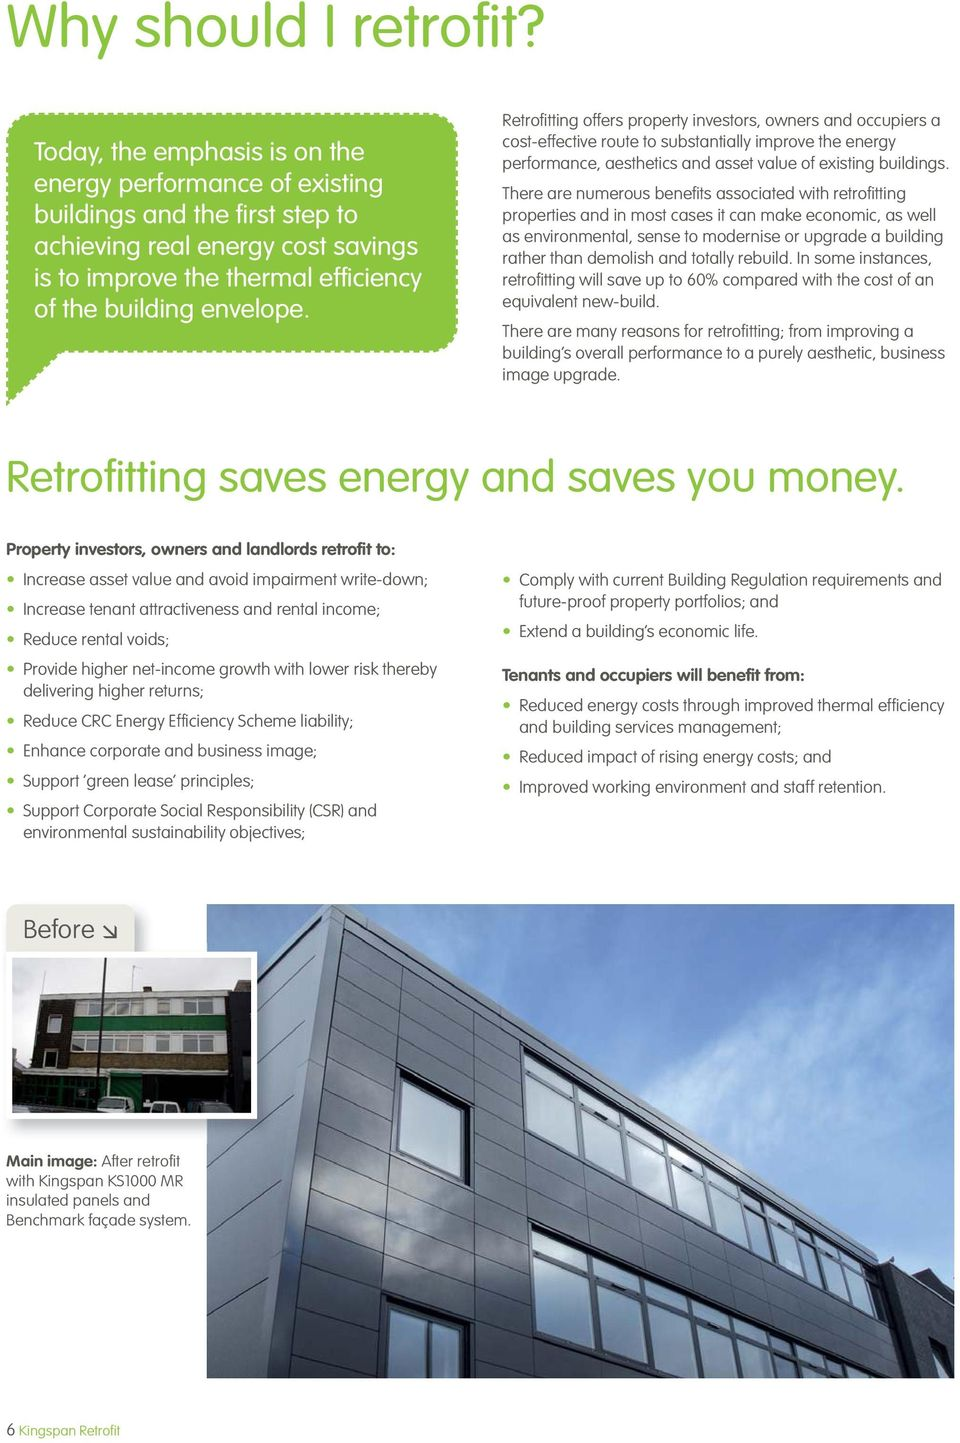 Retrofitting offers property investors, owners and occupiers a cost-effective route to substantially improve the energy performance, aesthetics and asset value of existing buildings.